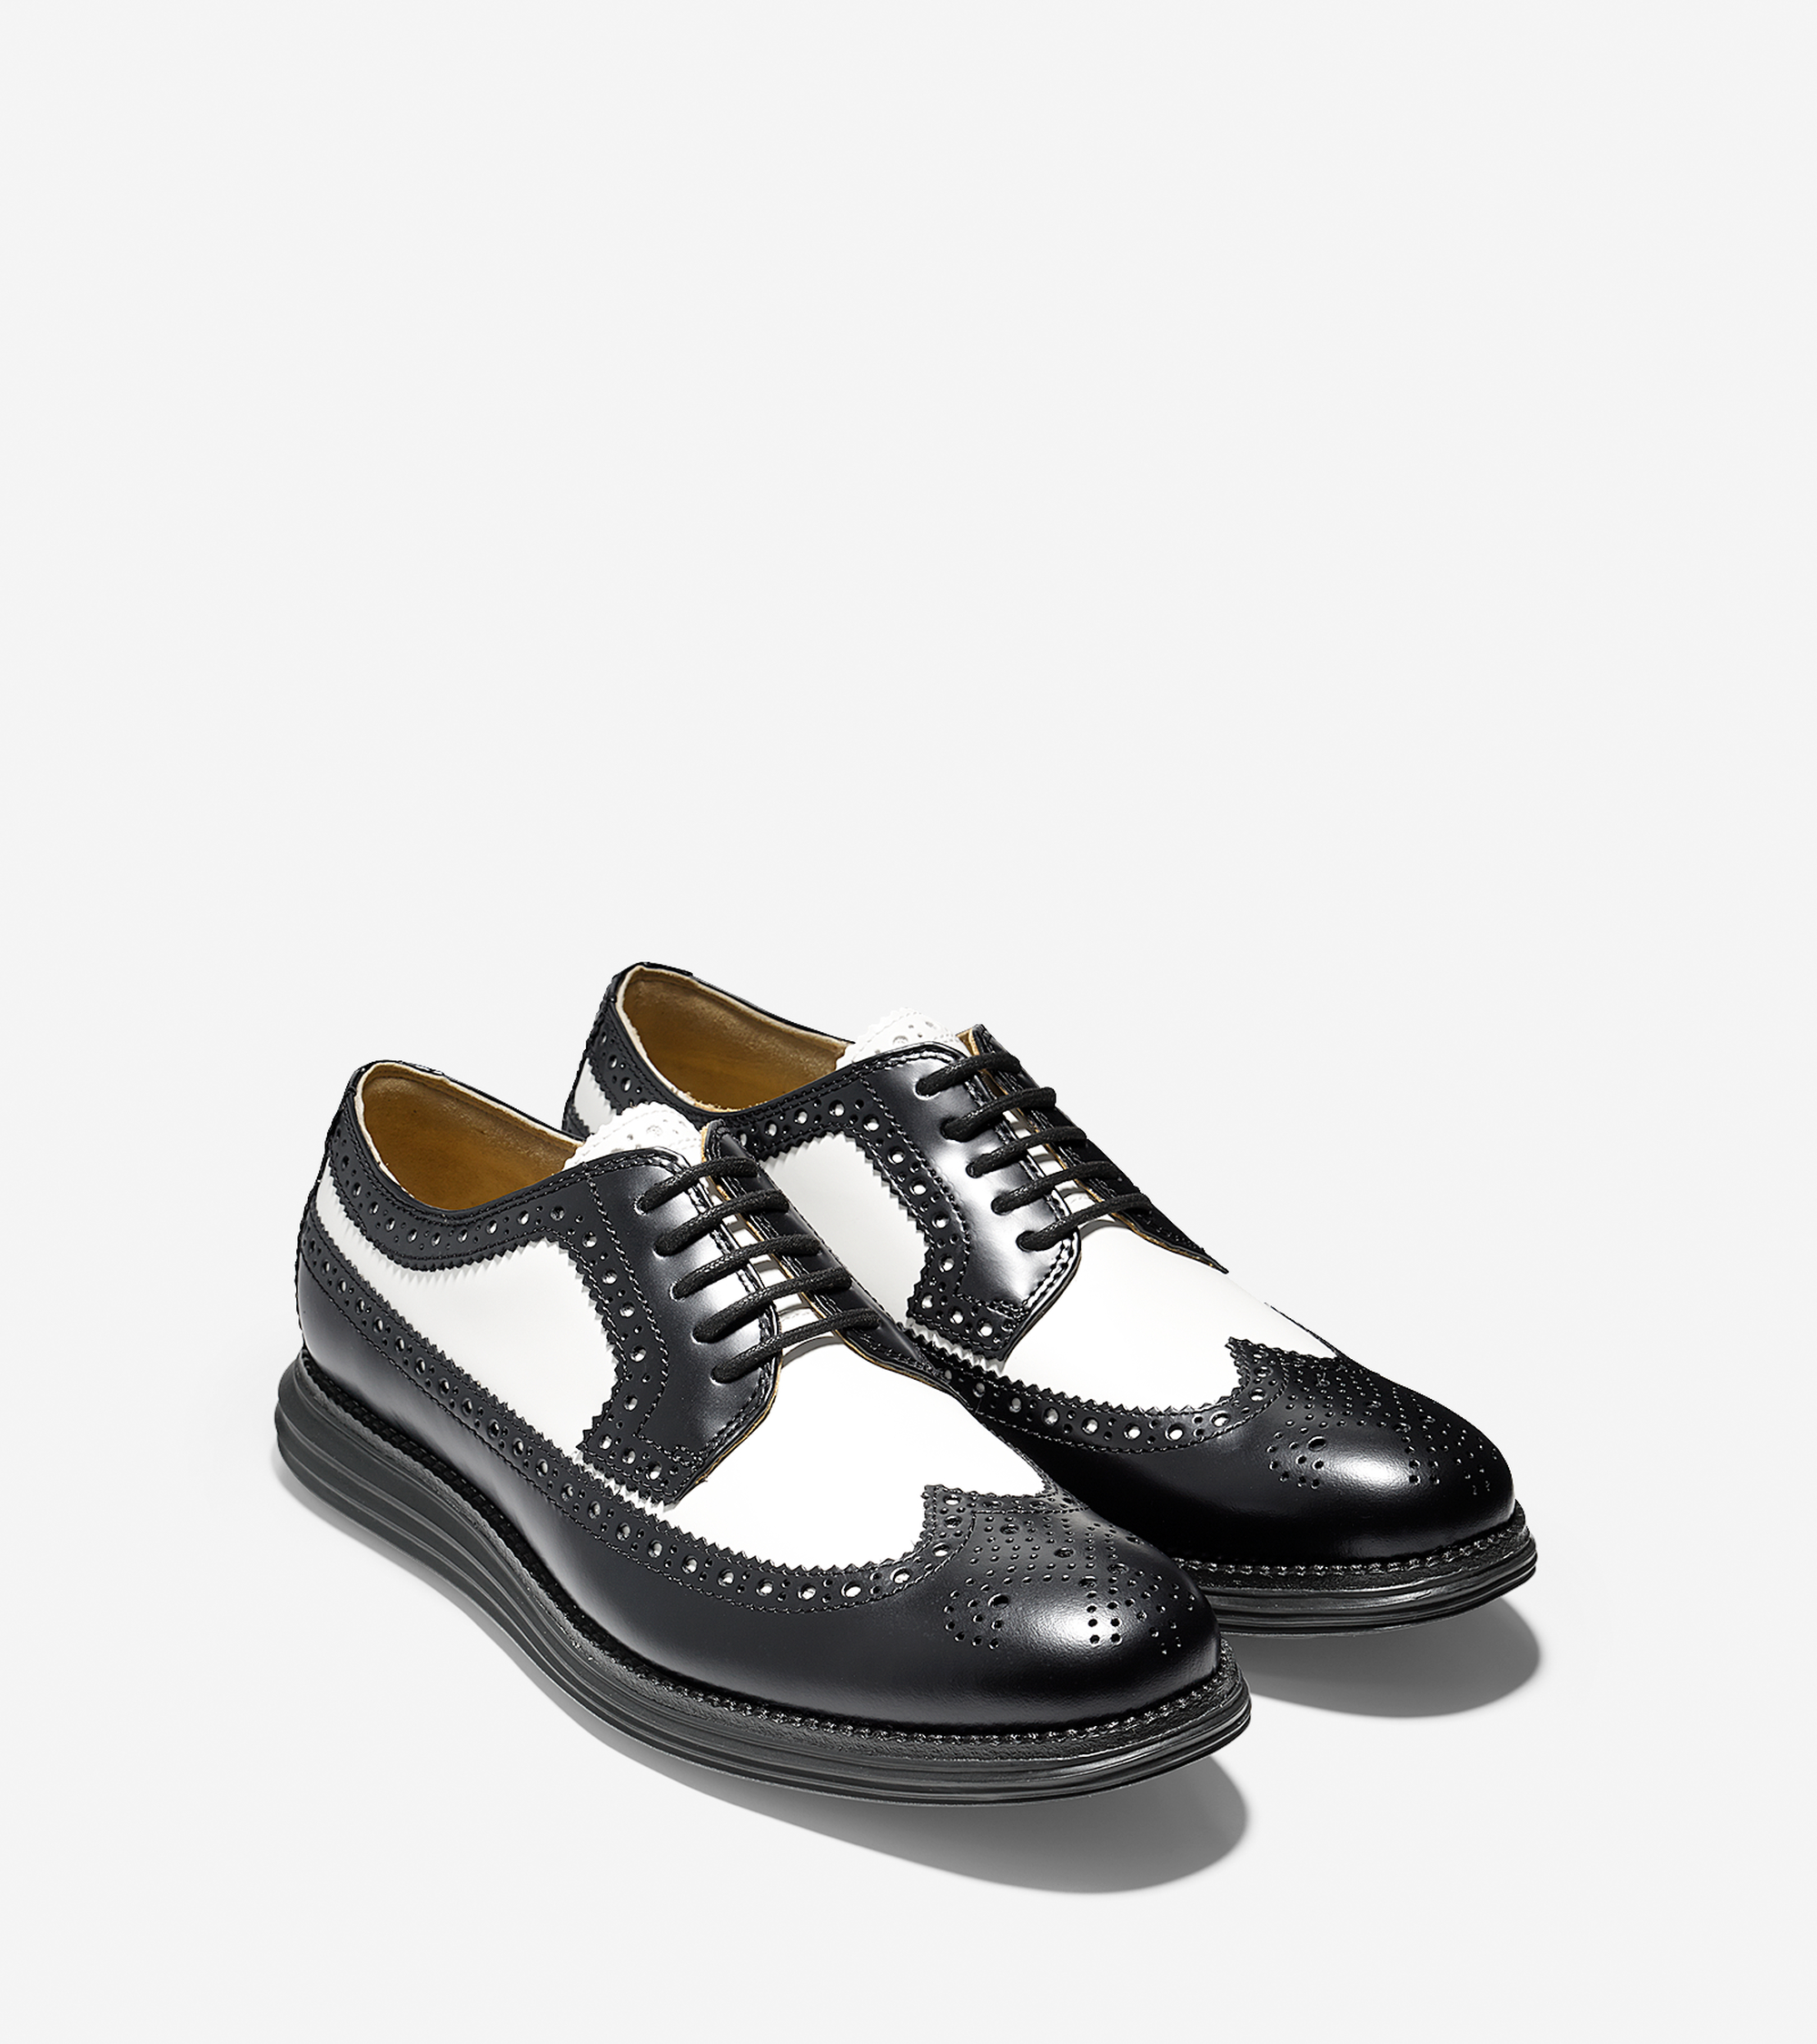 Related: cole haan zerogrand black cole haan zerogrand black cole haan wingtip mazda mx-5 miata special edition l cole haan stitchlite black cole haan sneakers cole haan black 11 cole haan black .